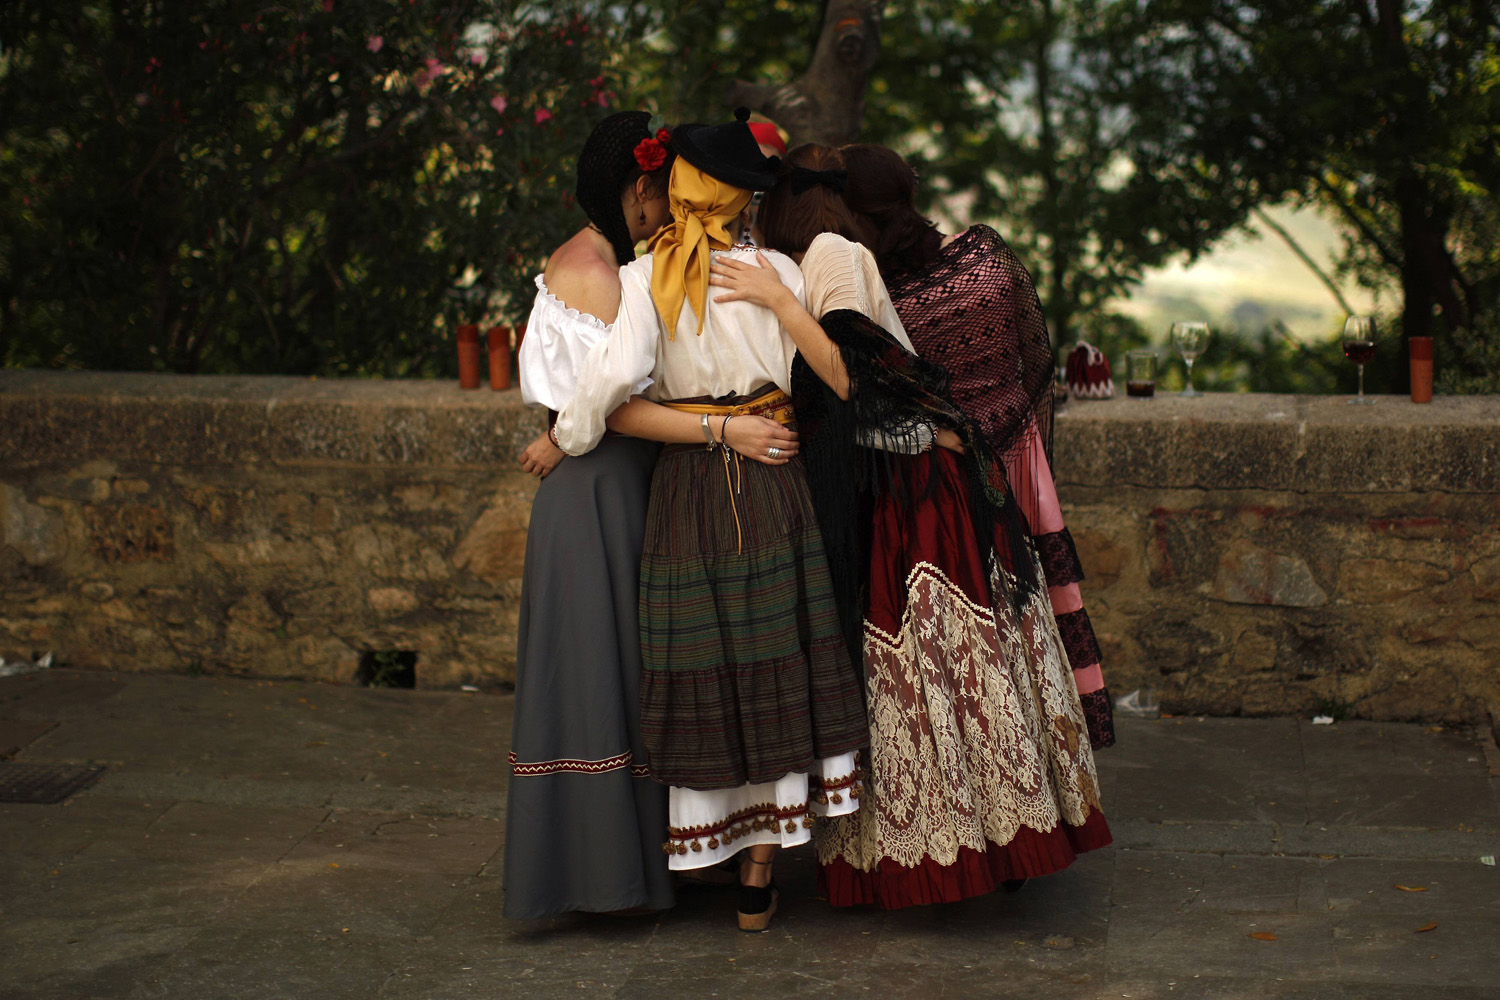 May 31, 2014. Women wearing traditional costumes are photographed by a friend during the second edition of  Ronda Romantica  (Romantic Ronda) in Ronda, near Malaga, southern Spain.